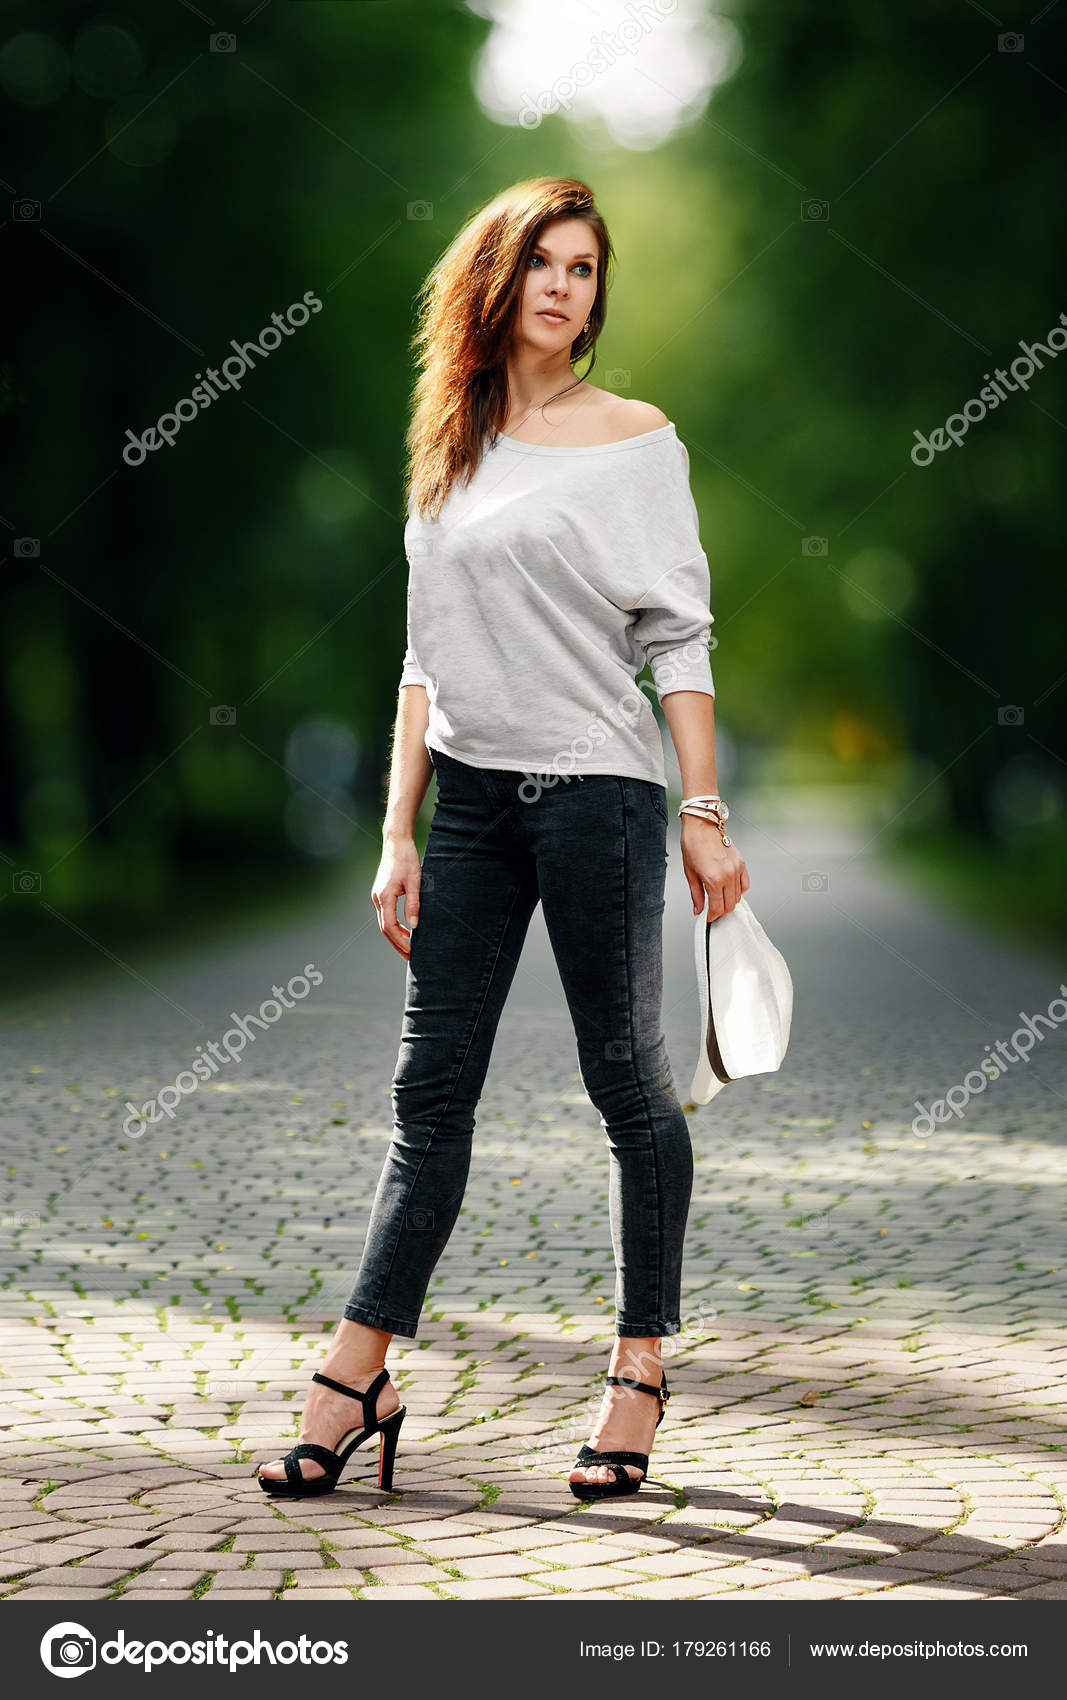 460f1bcd3fc Beautiful girl in a white tank top in the park, sexy look– stock image